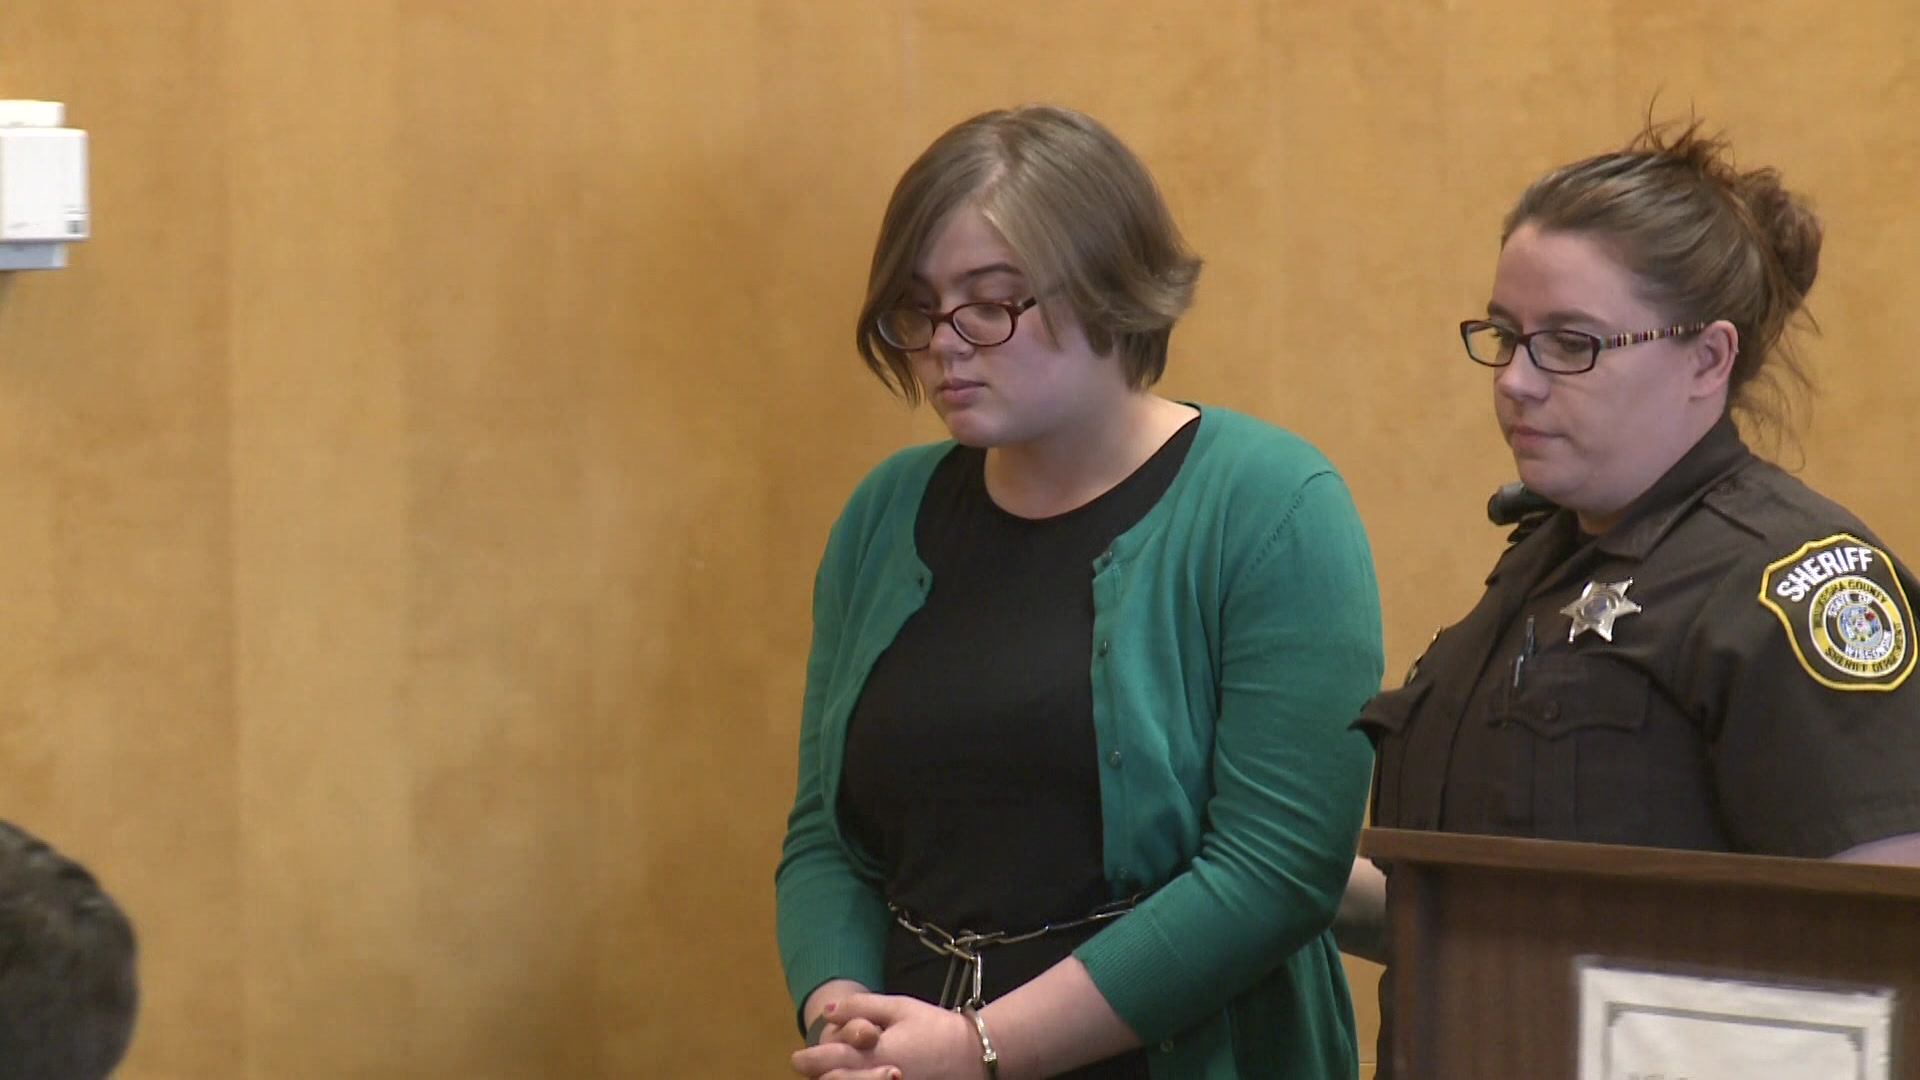 Girl Who Pleaded Guilty In Slender Man Stabbing Case To Be